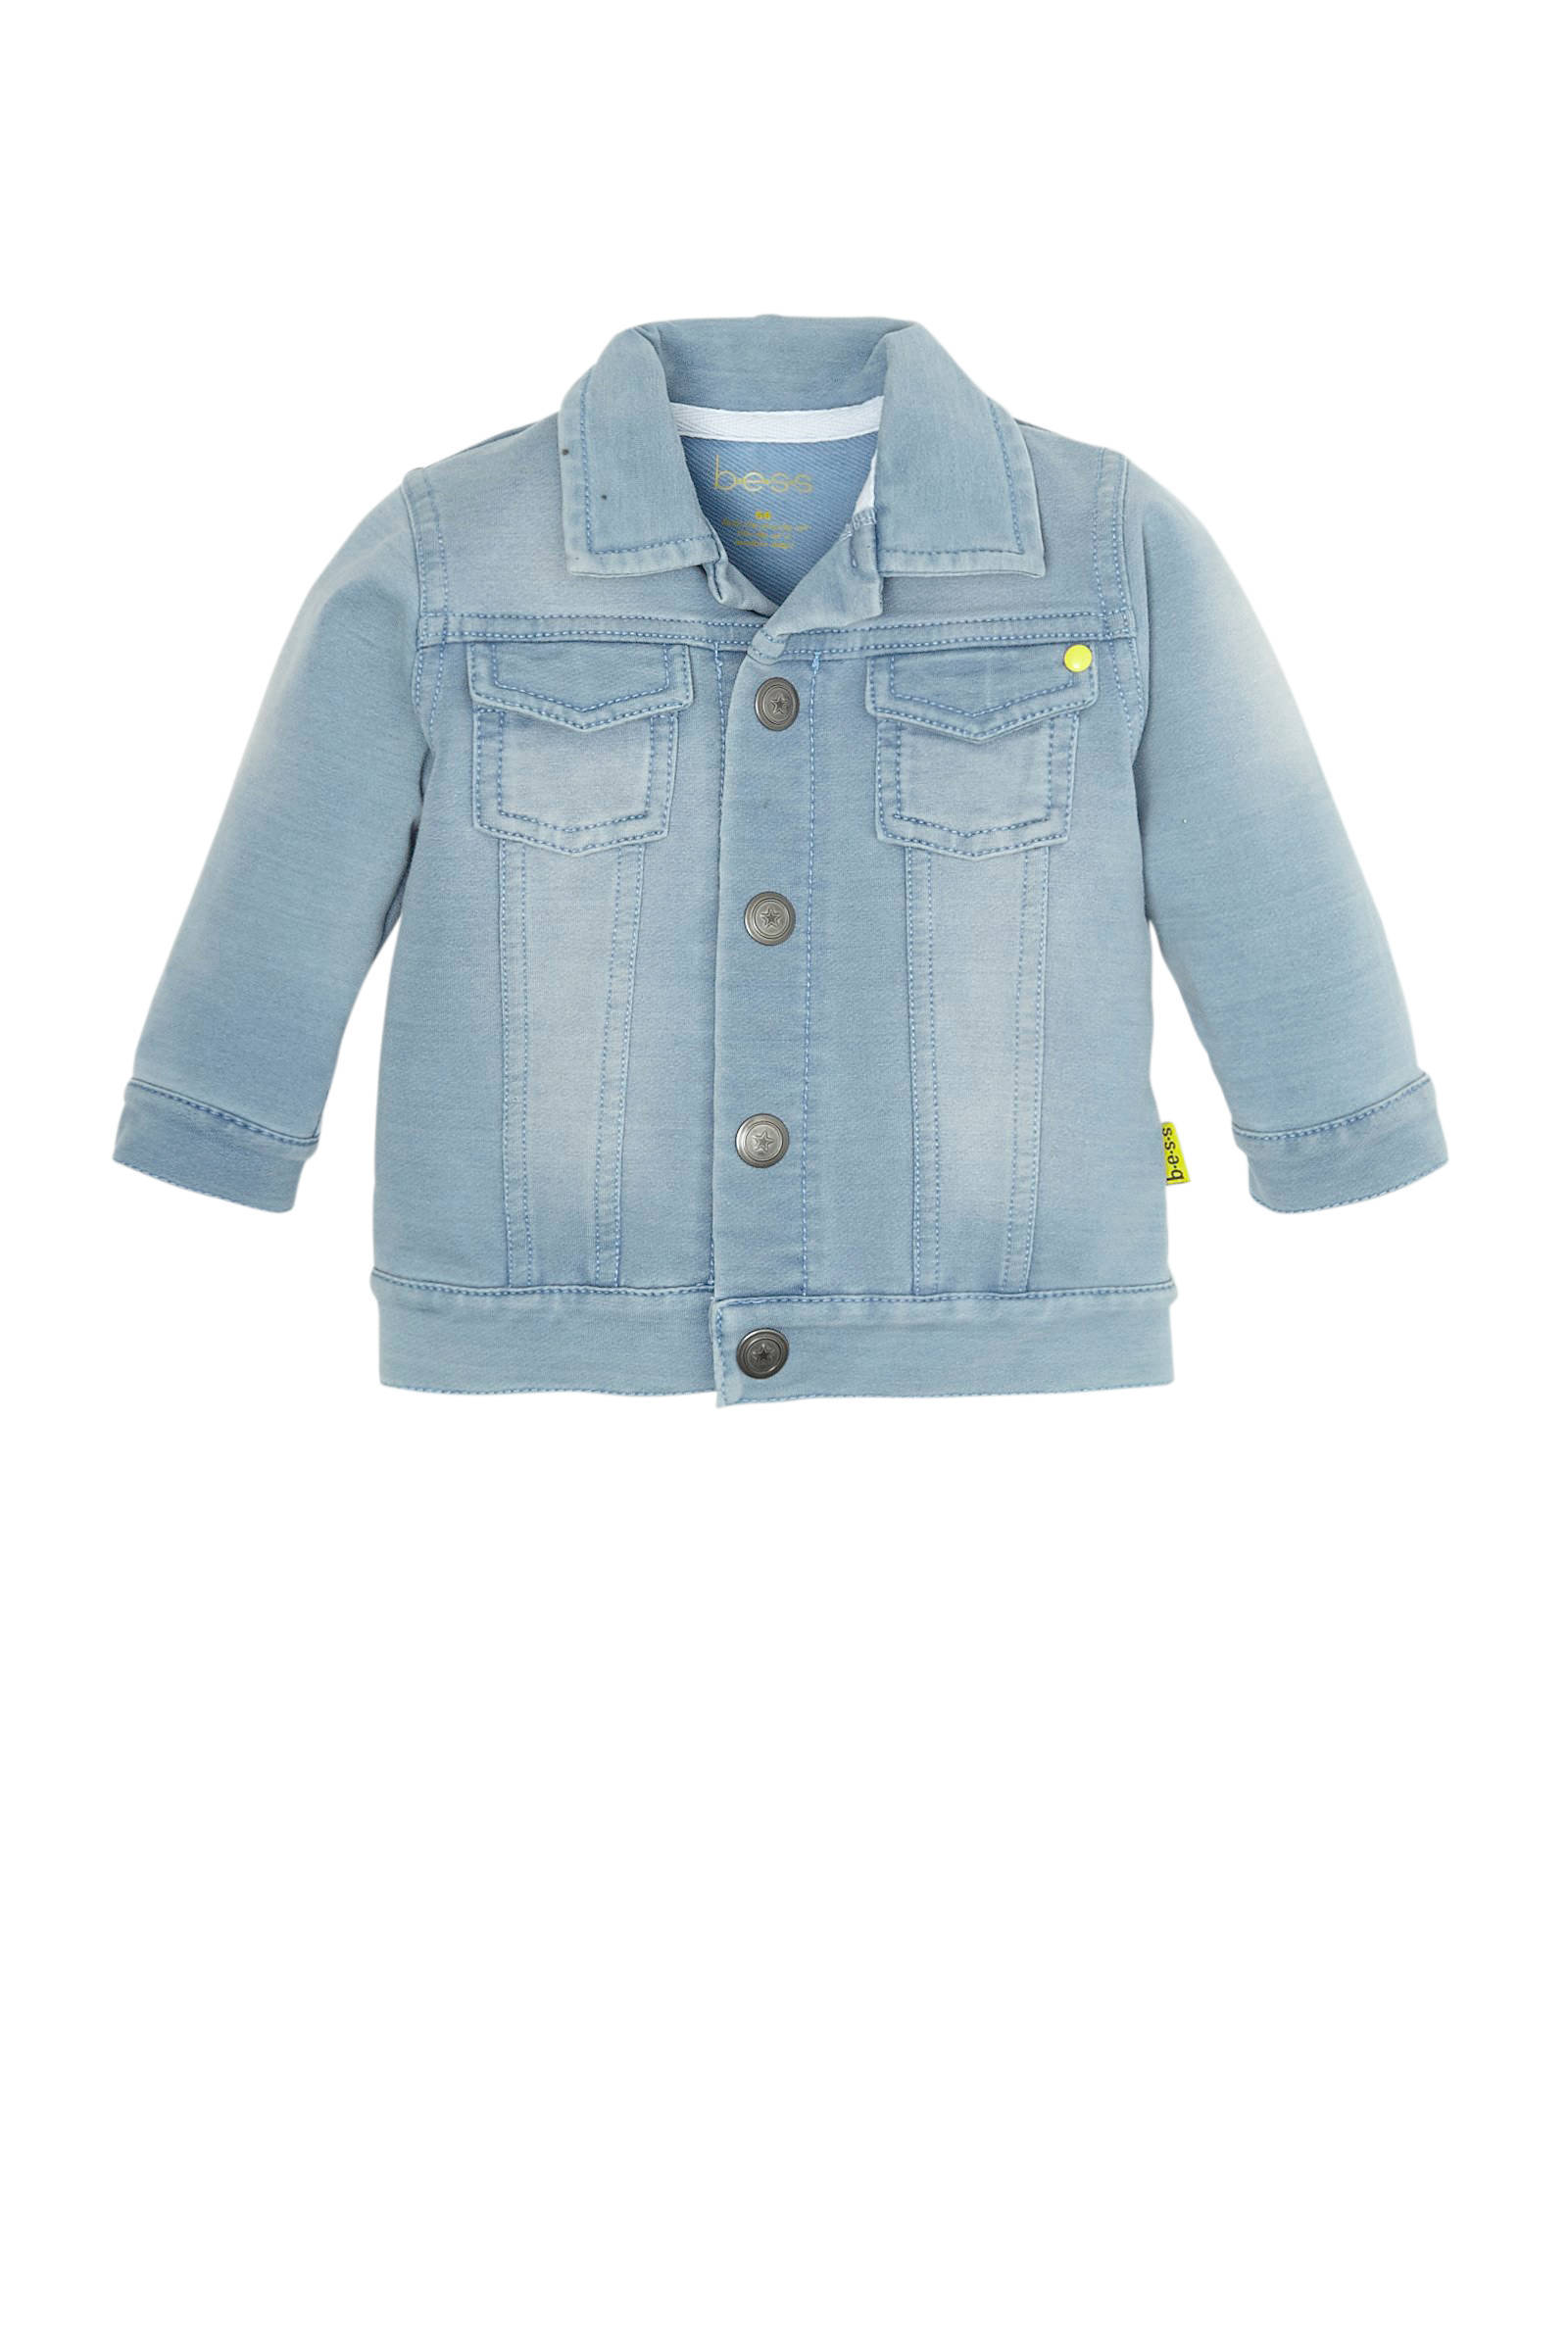 B.E.S.S baby spijkerjas light denim